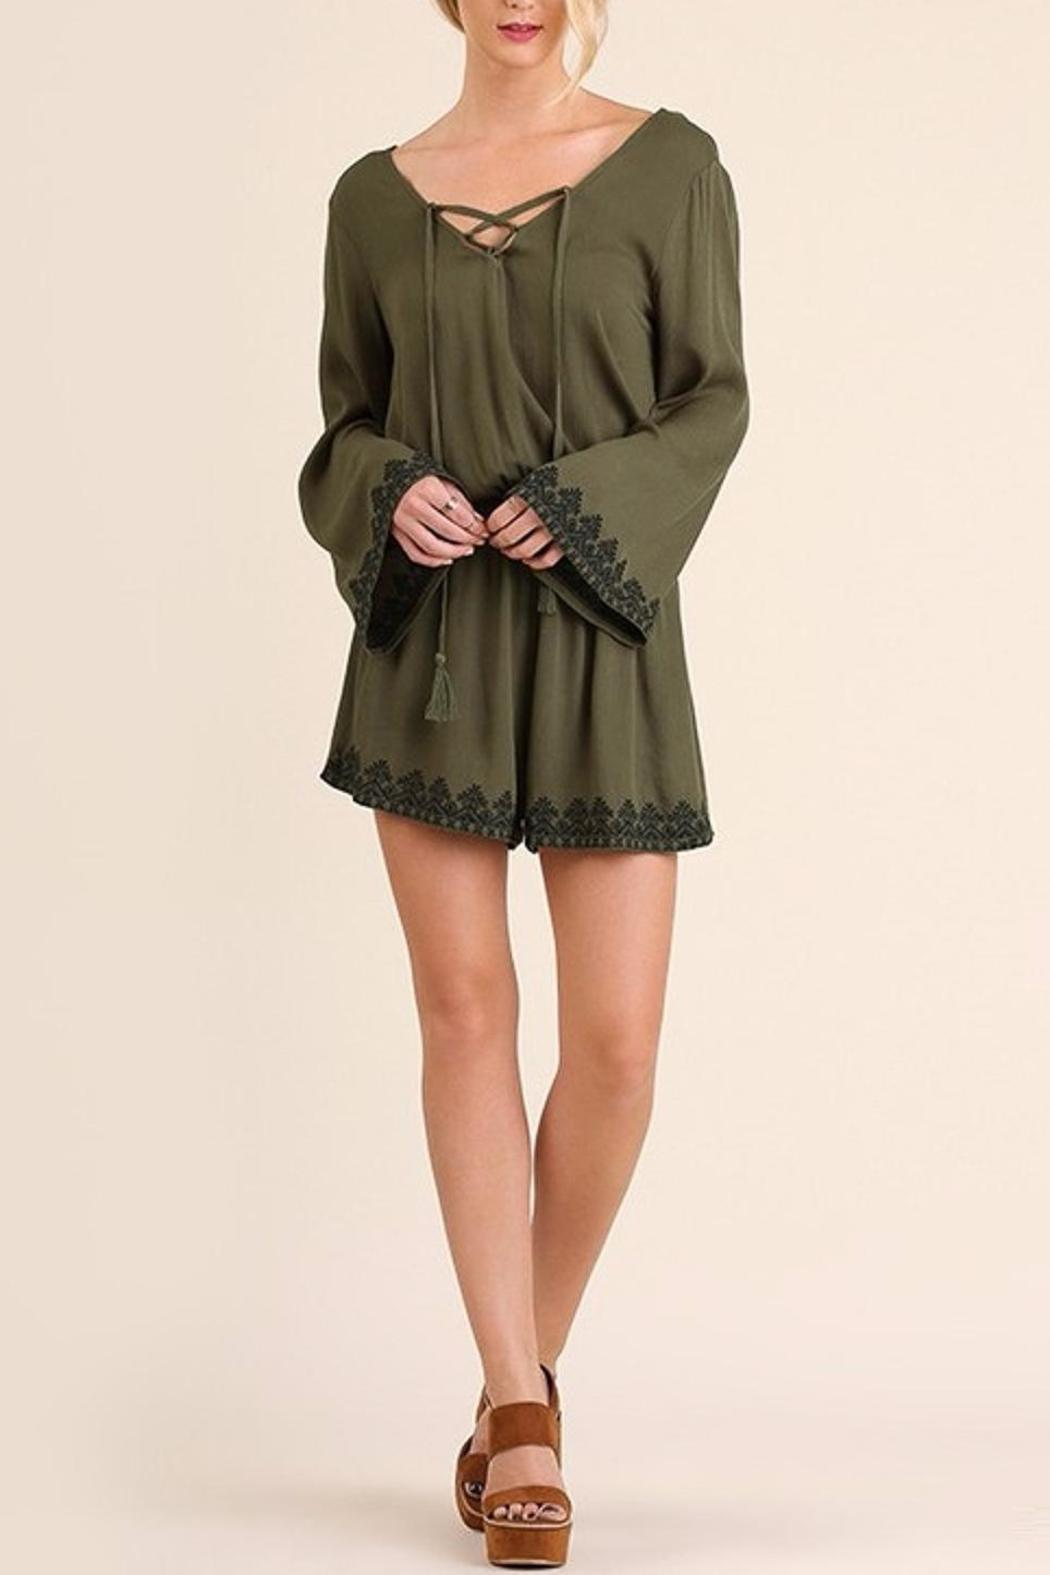 People Outfitter Pretty n Free Romper - Main Image